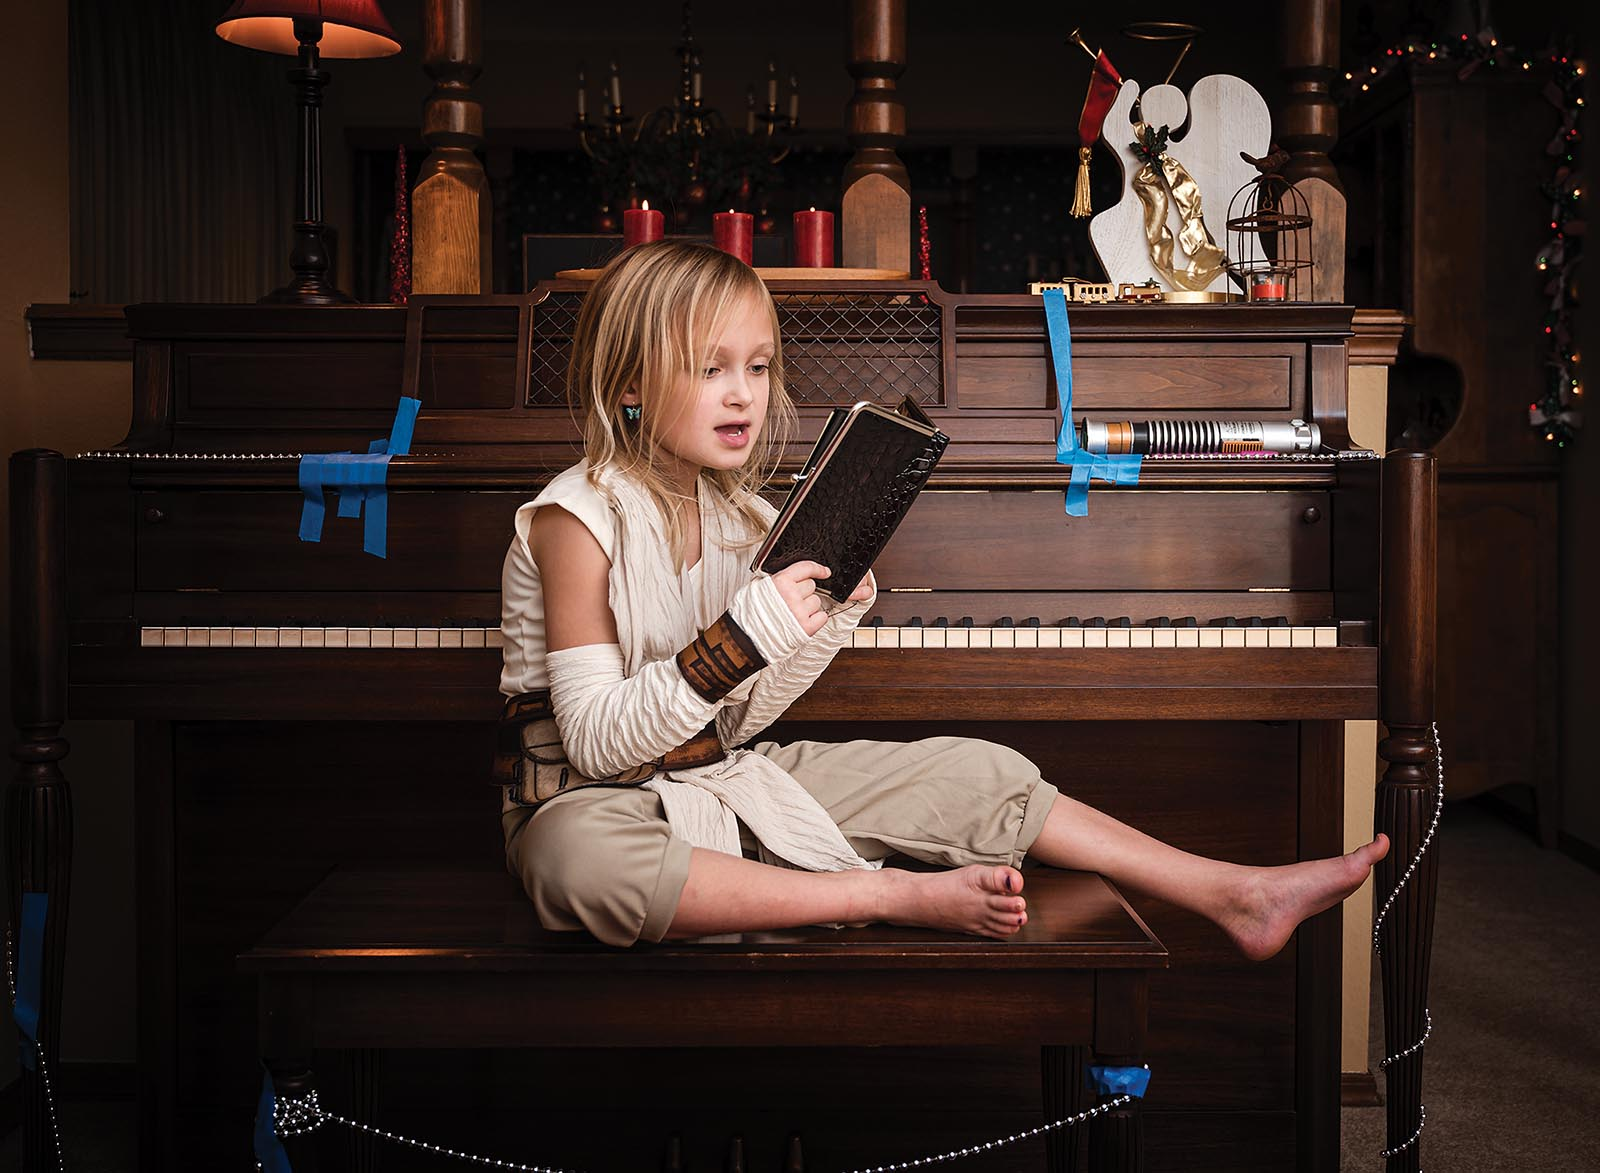 Supplemental light situation with girl at piano